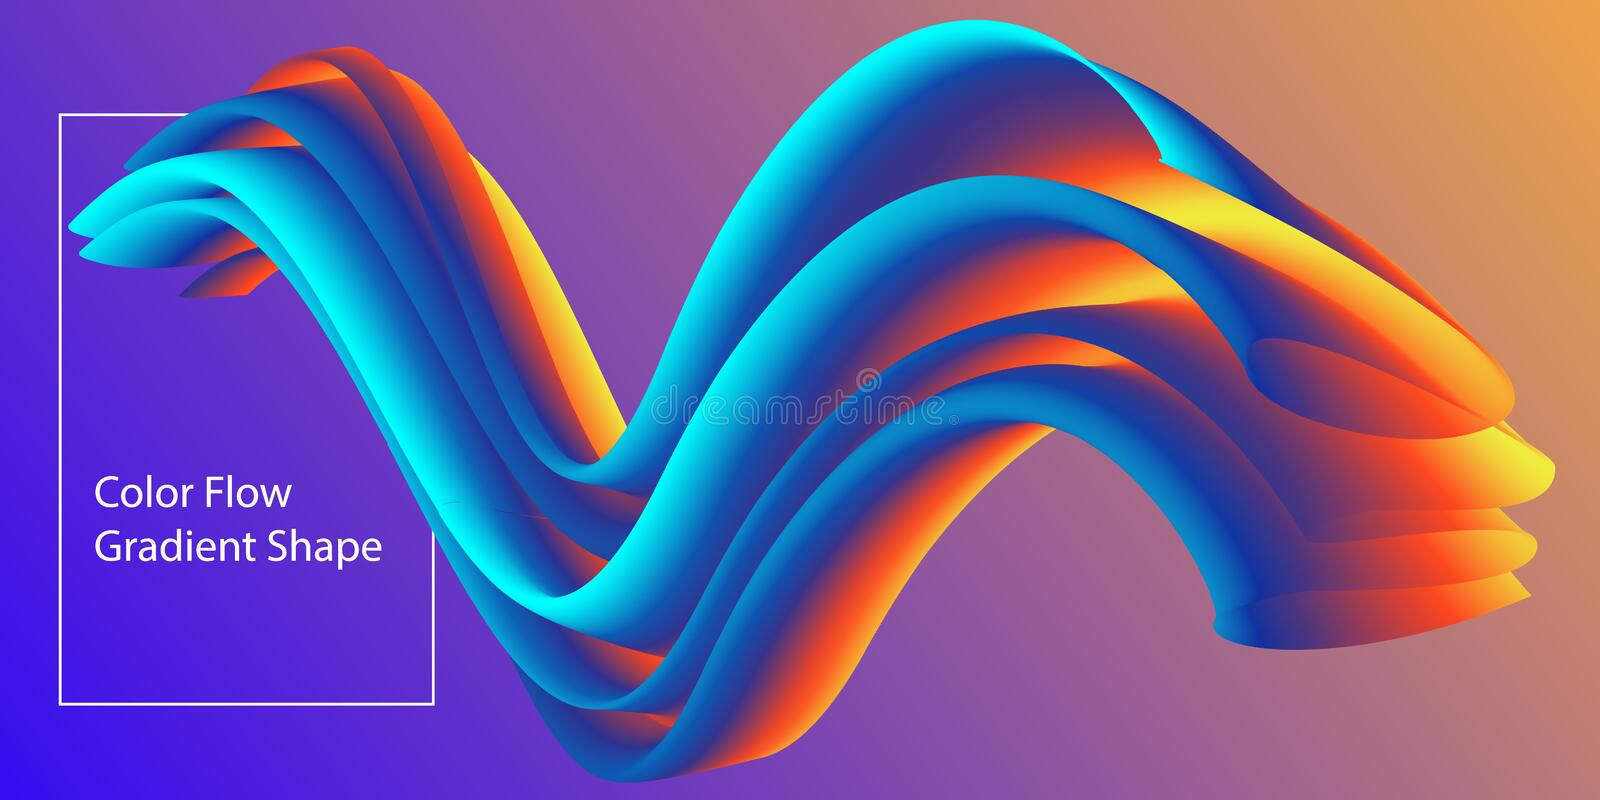 Abstract Color flow shape template, Liquid colorful gradient background. Vector Illustration.  royalty free illustration